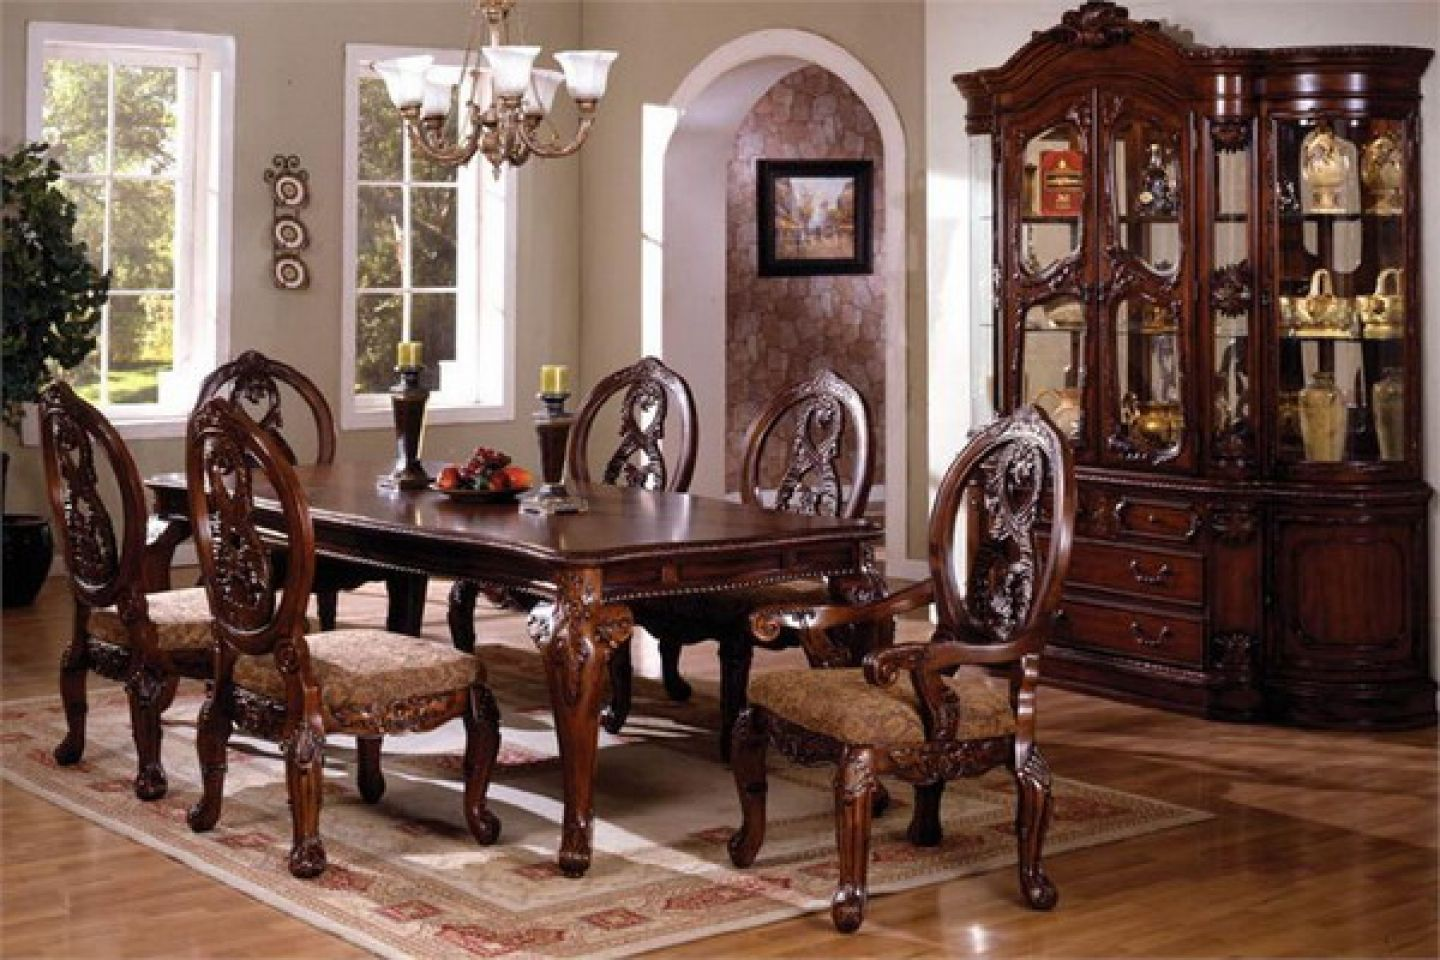 The elegant traditional Tuscany dining table set is the  : 174d051bf9f4225c6756e21617b65a30 from www.pinterest.com size 1440 x 960 jpeg 864kB